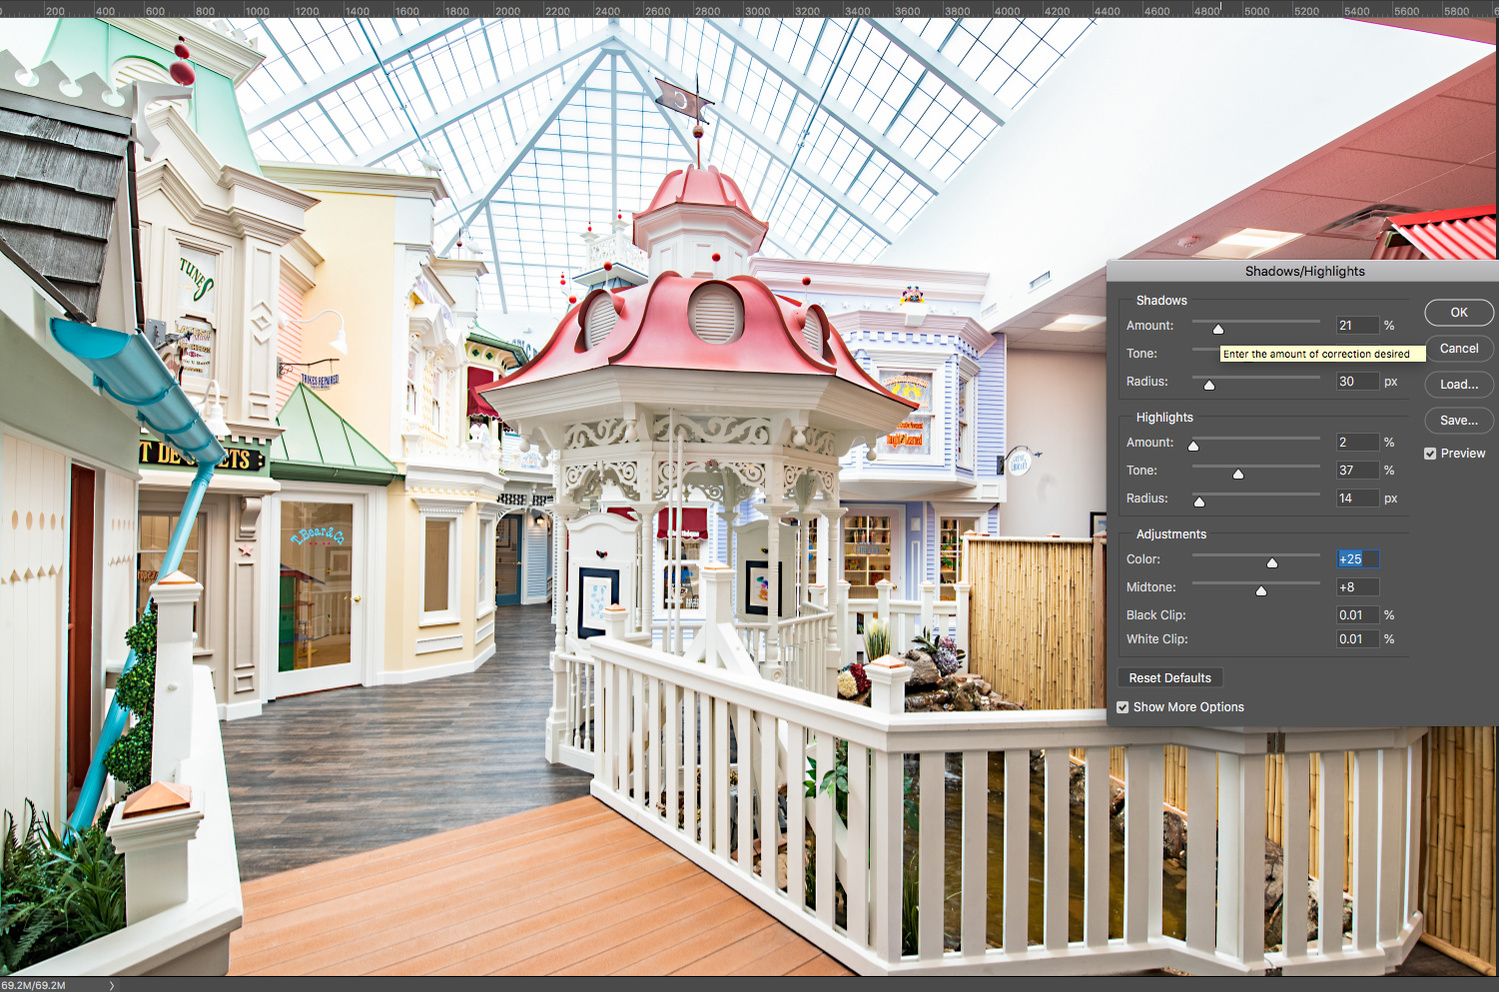 a screenshot showing the Shadows/Highlights adjustment window in Photoshop